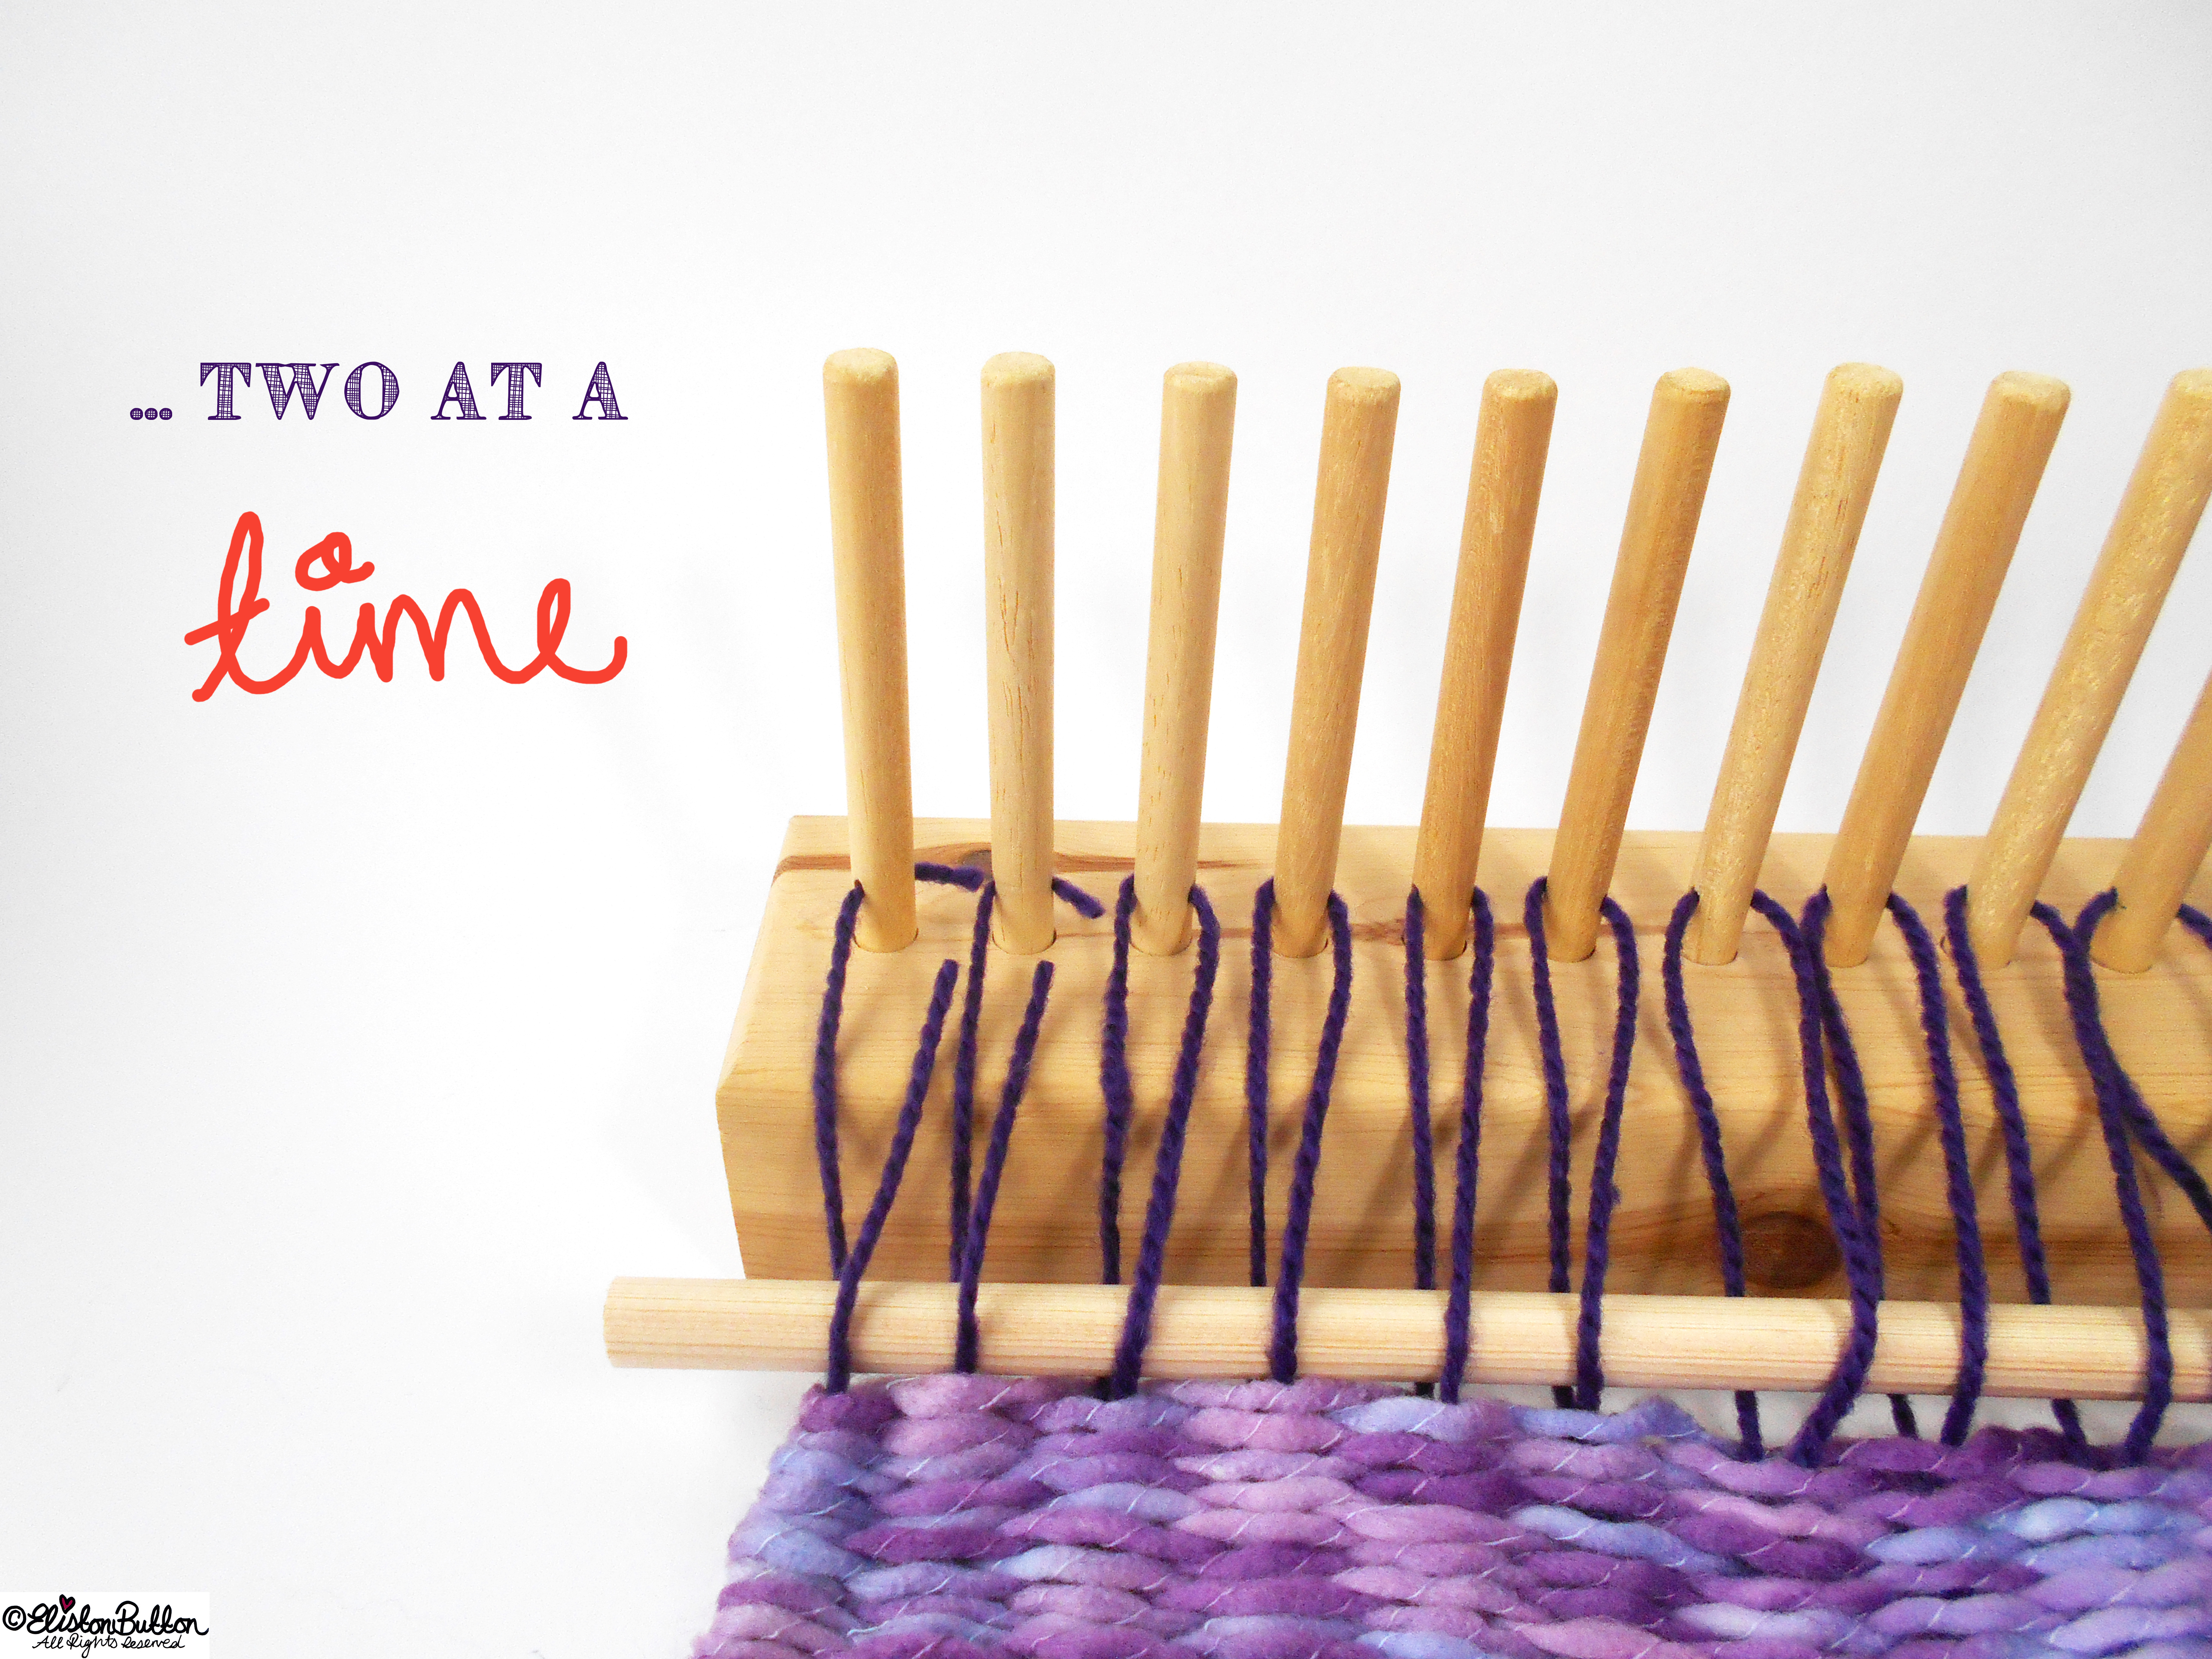 Two at a Time. - Tutorial Tuesday - Peg Loom Weaving - Part Two at www.elistonbutton.com - Eliston Button - That Crafty Kid – Art, Design, Craft & Adventure.